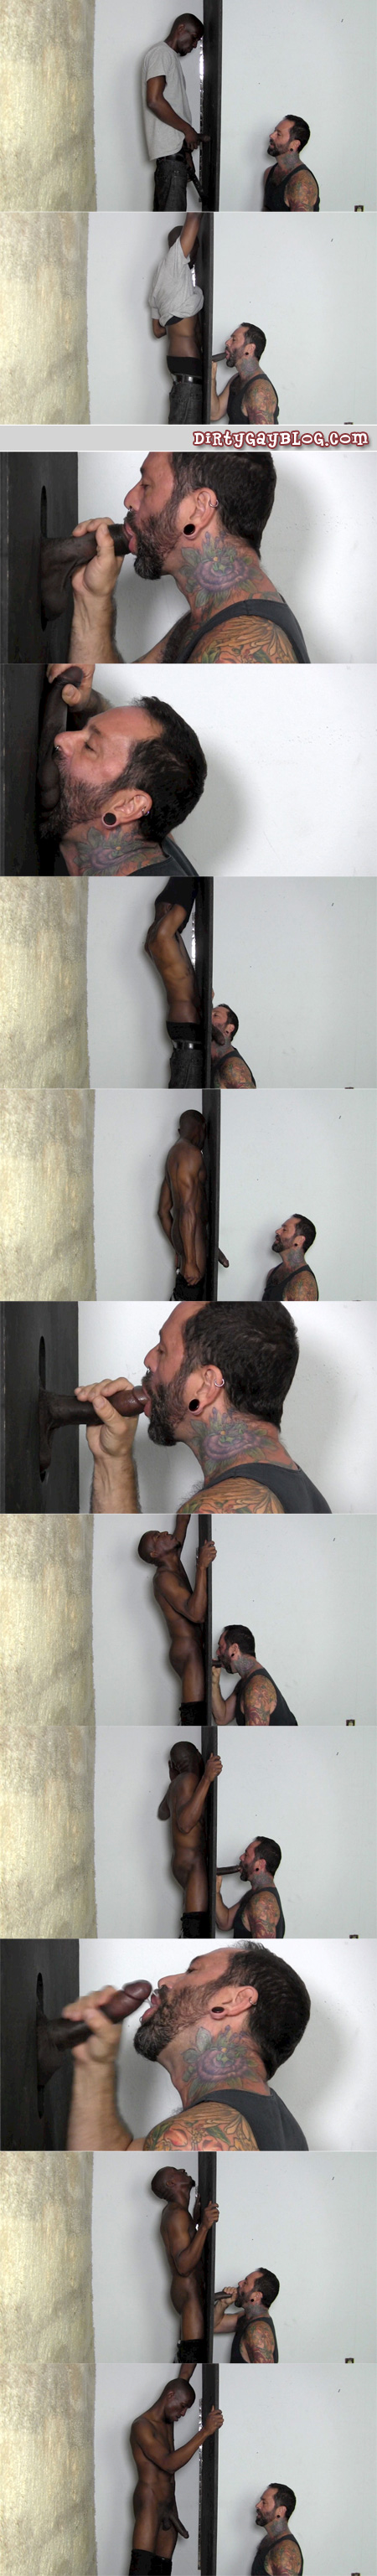 Straight black man with an enormous dick gets sucked off by a male cum swallower at an anonymous gloryhole.